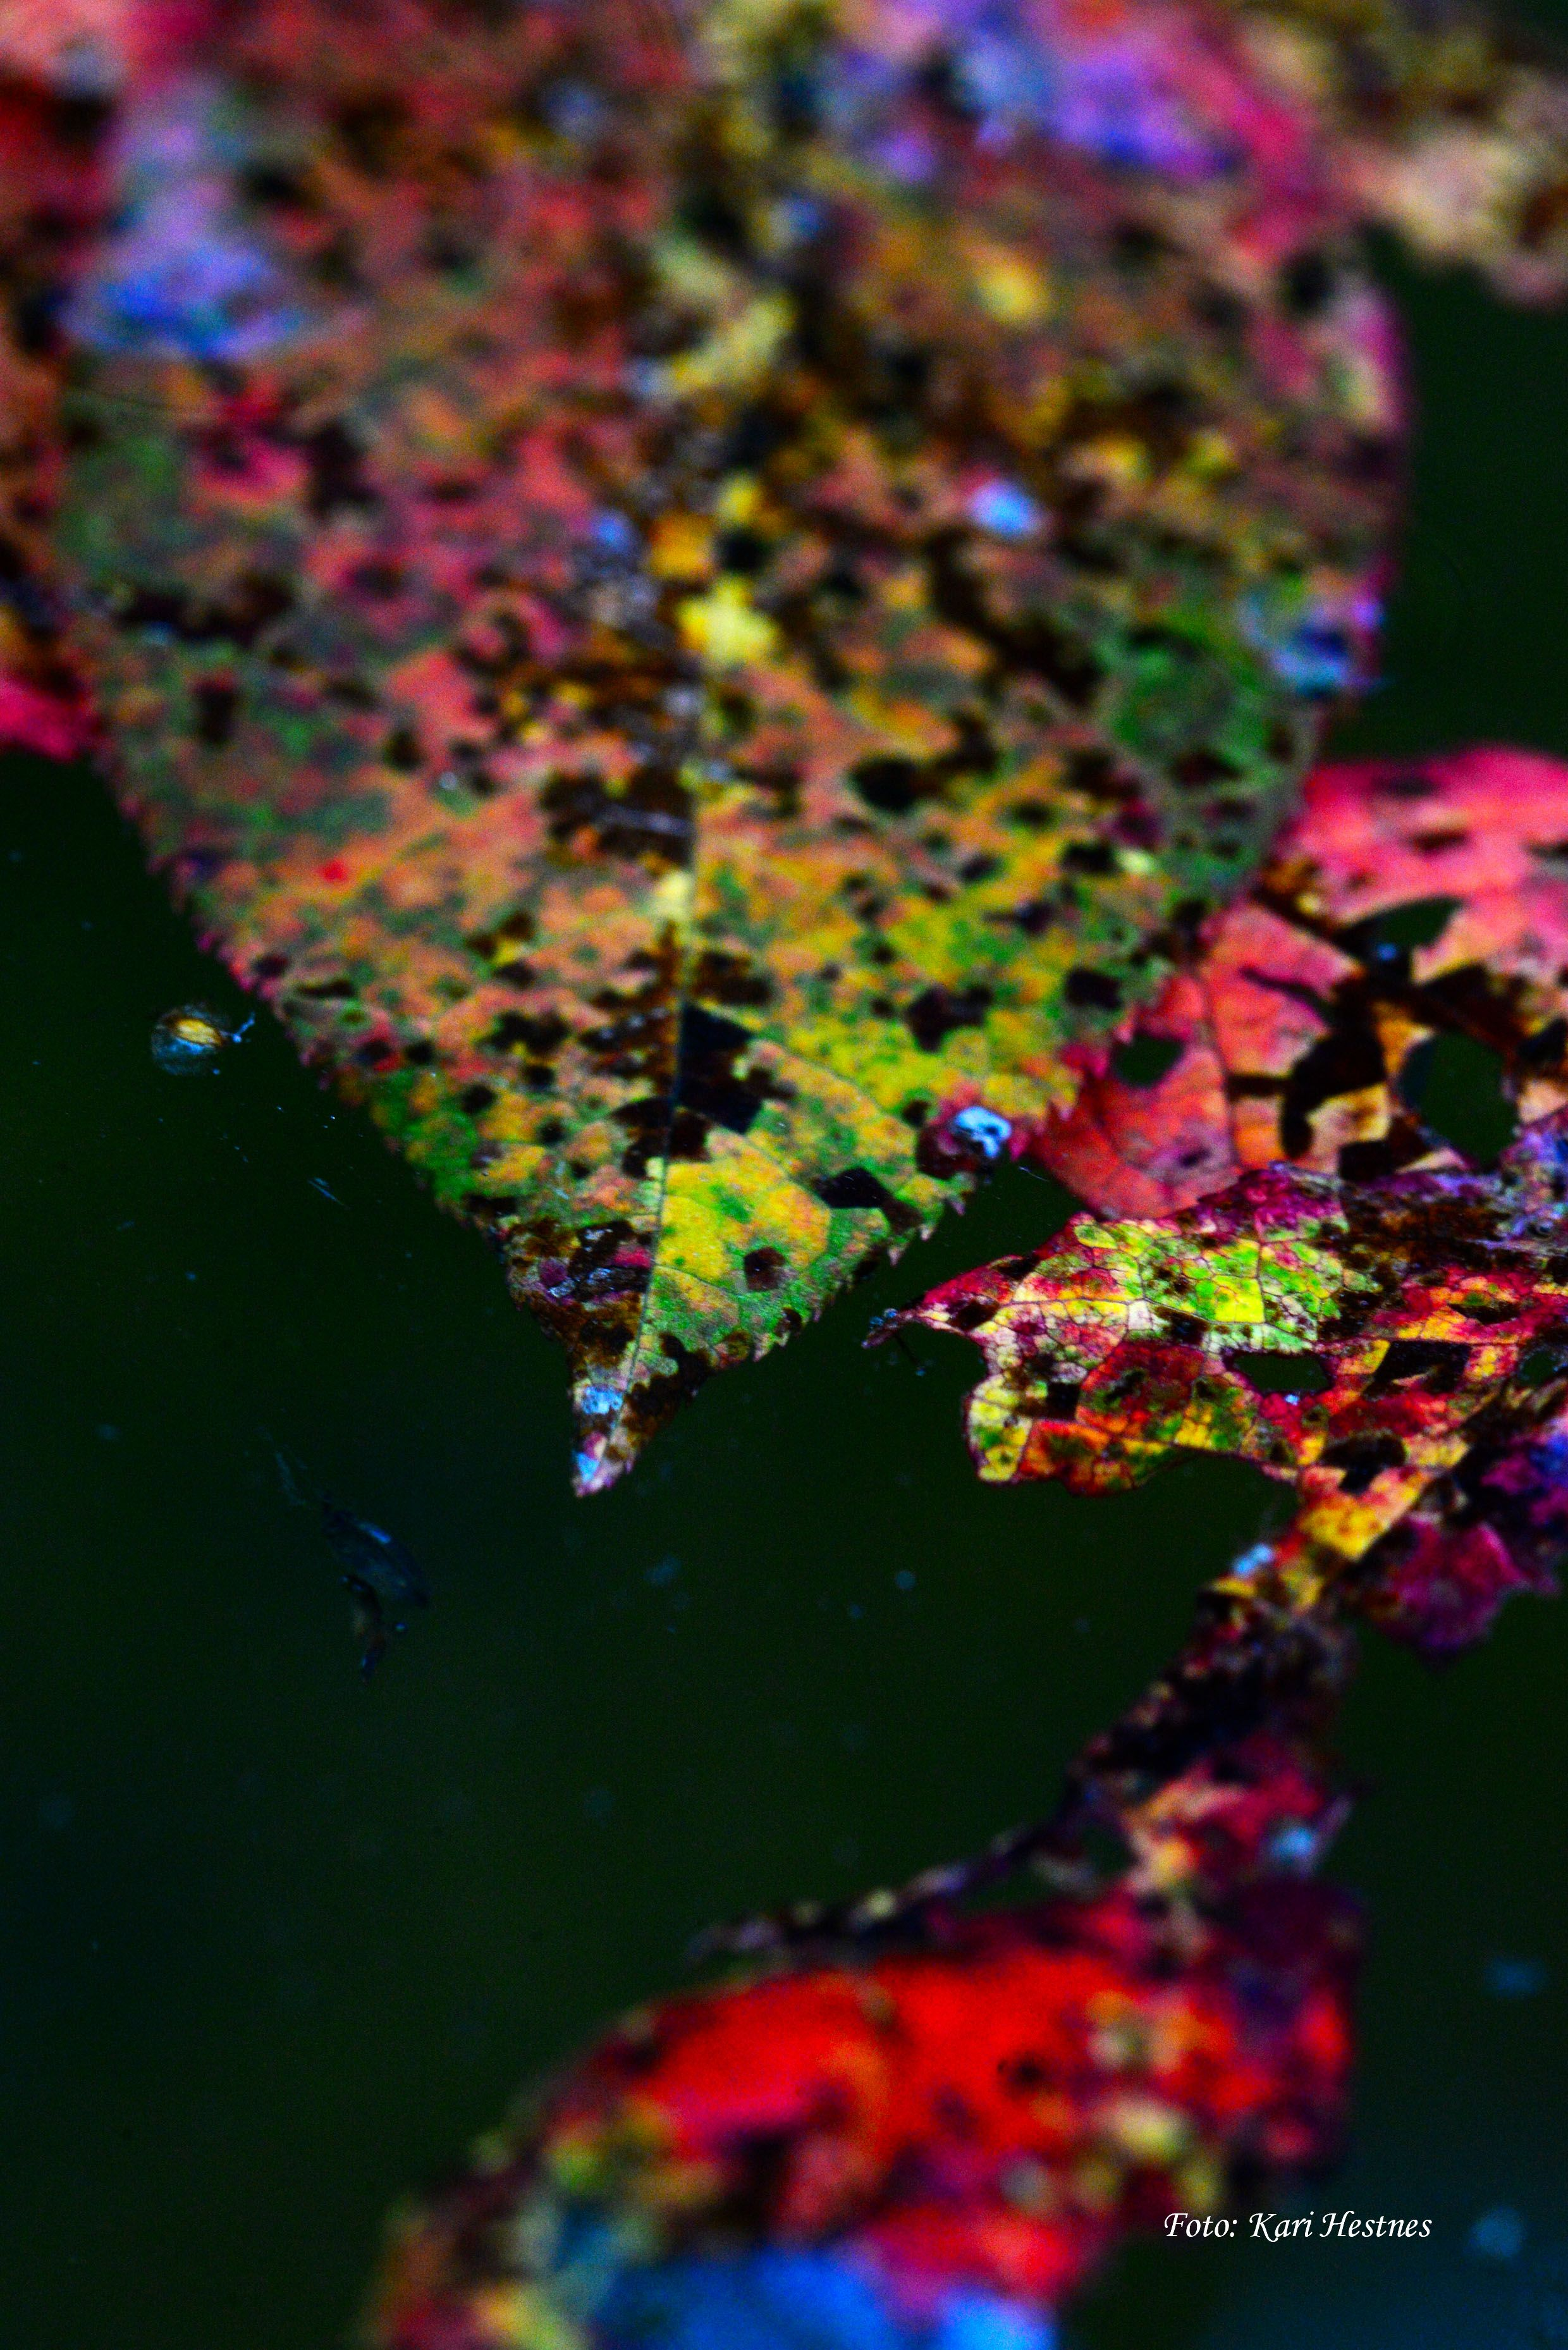 The bauty of death a serie of photograpies I am working on. #photo#Kari Hestnes#the beaty of death#nature#leaves#water